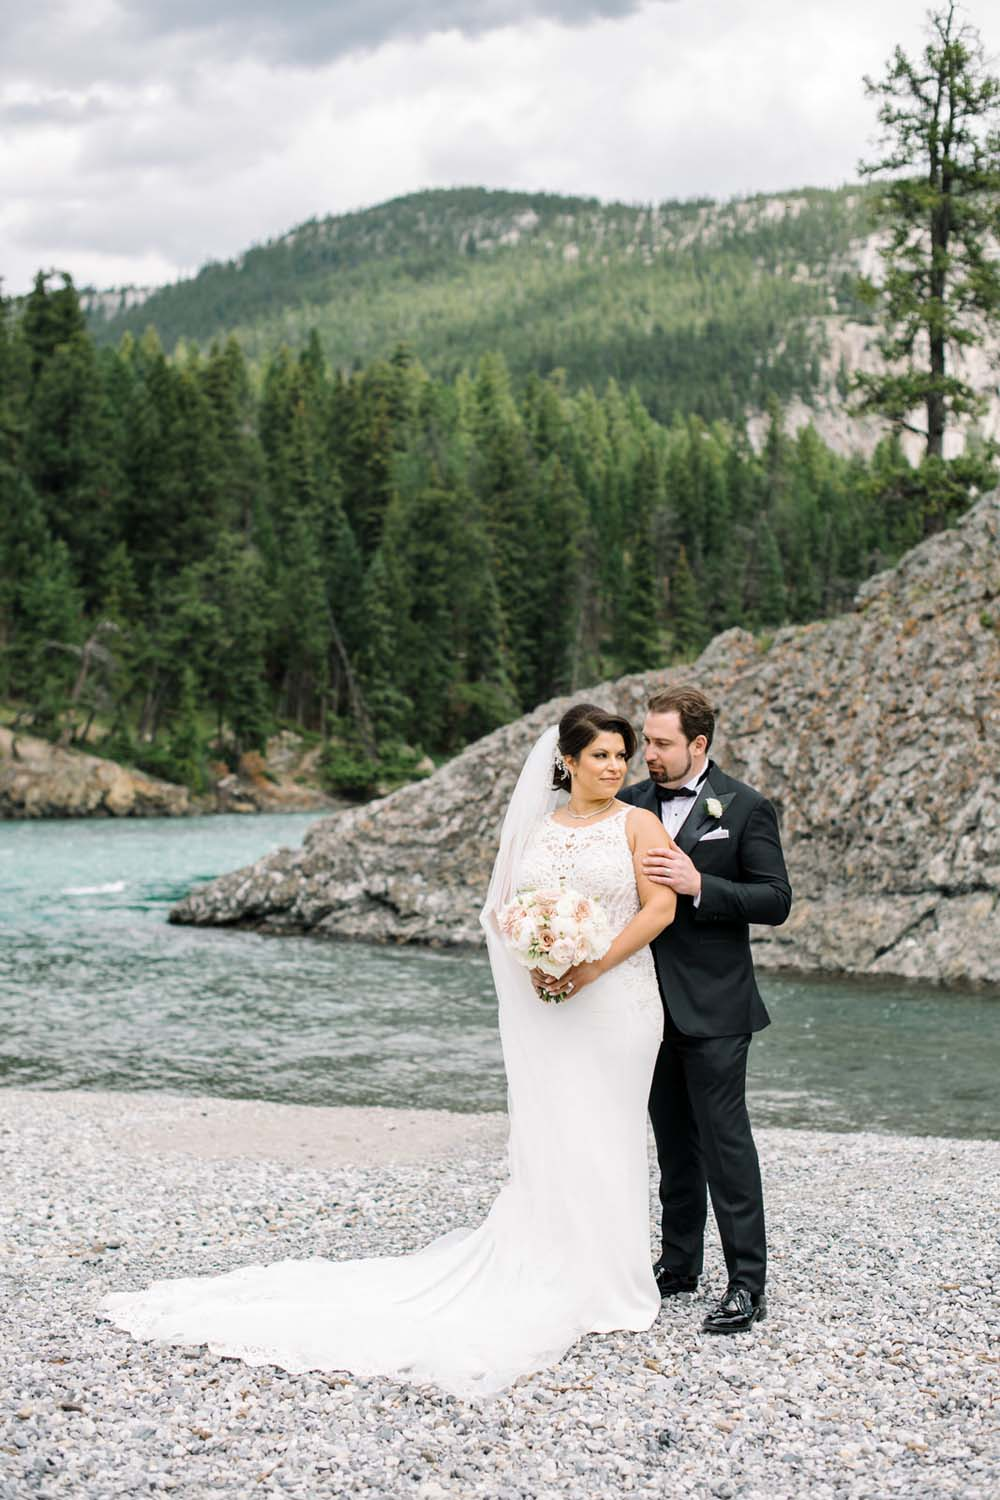 A Regal Fairytale Wedding in Banff, Alberta - Couple